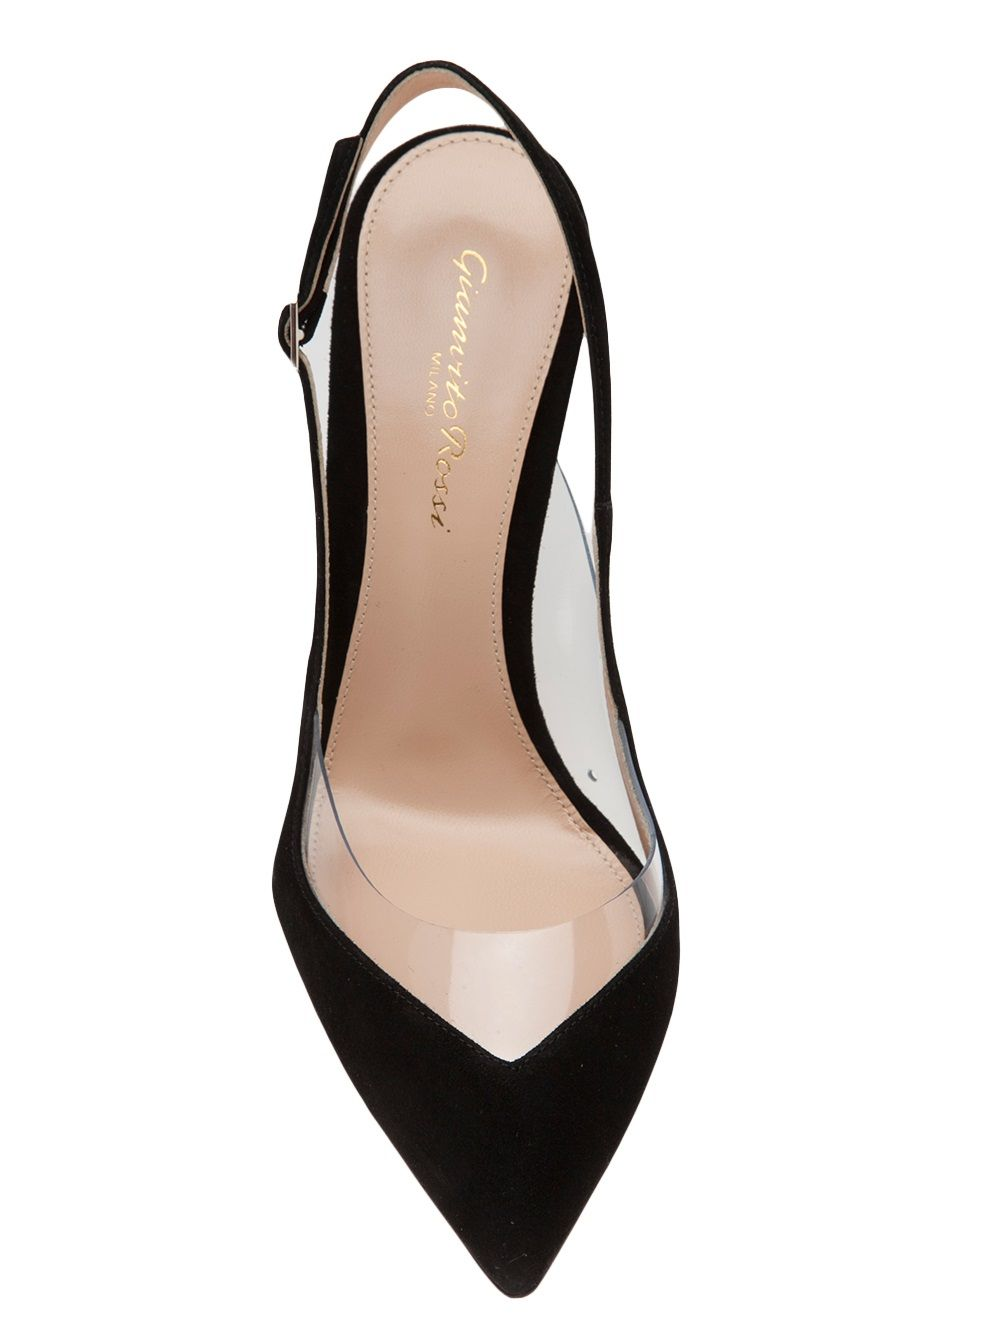 7fee17a9159 Gianvito Rossi - Spring 2014 - slingback kitten heel - Black suede  slingback kitten heel from Gianvito Rossi featuring a pointed toe